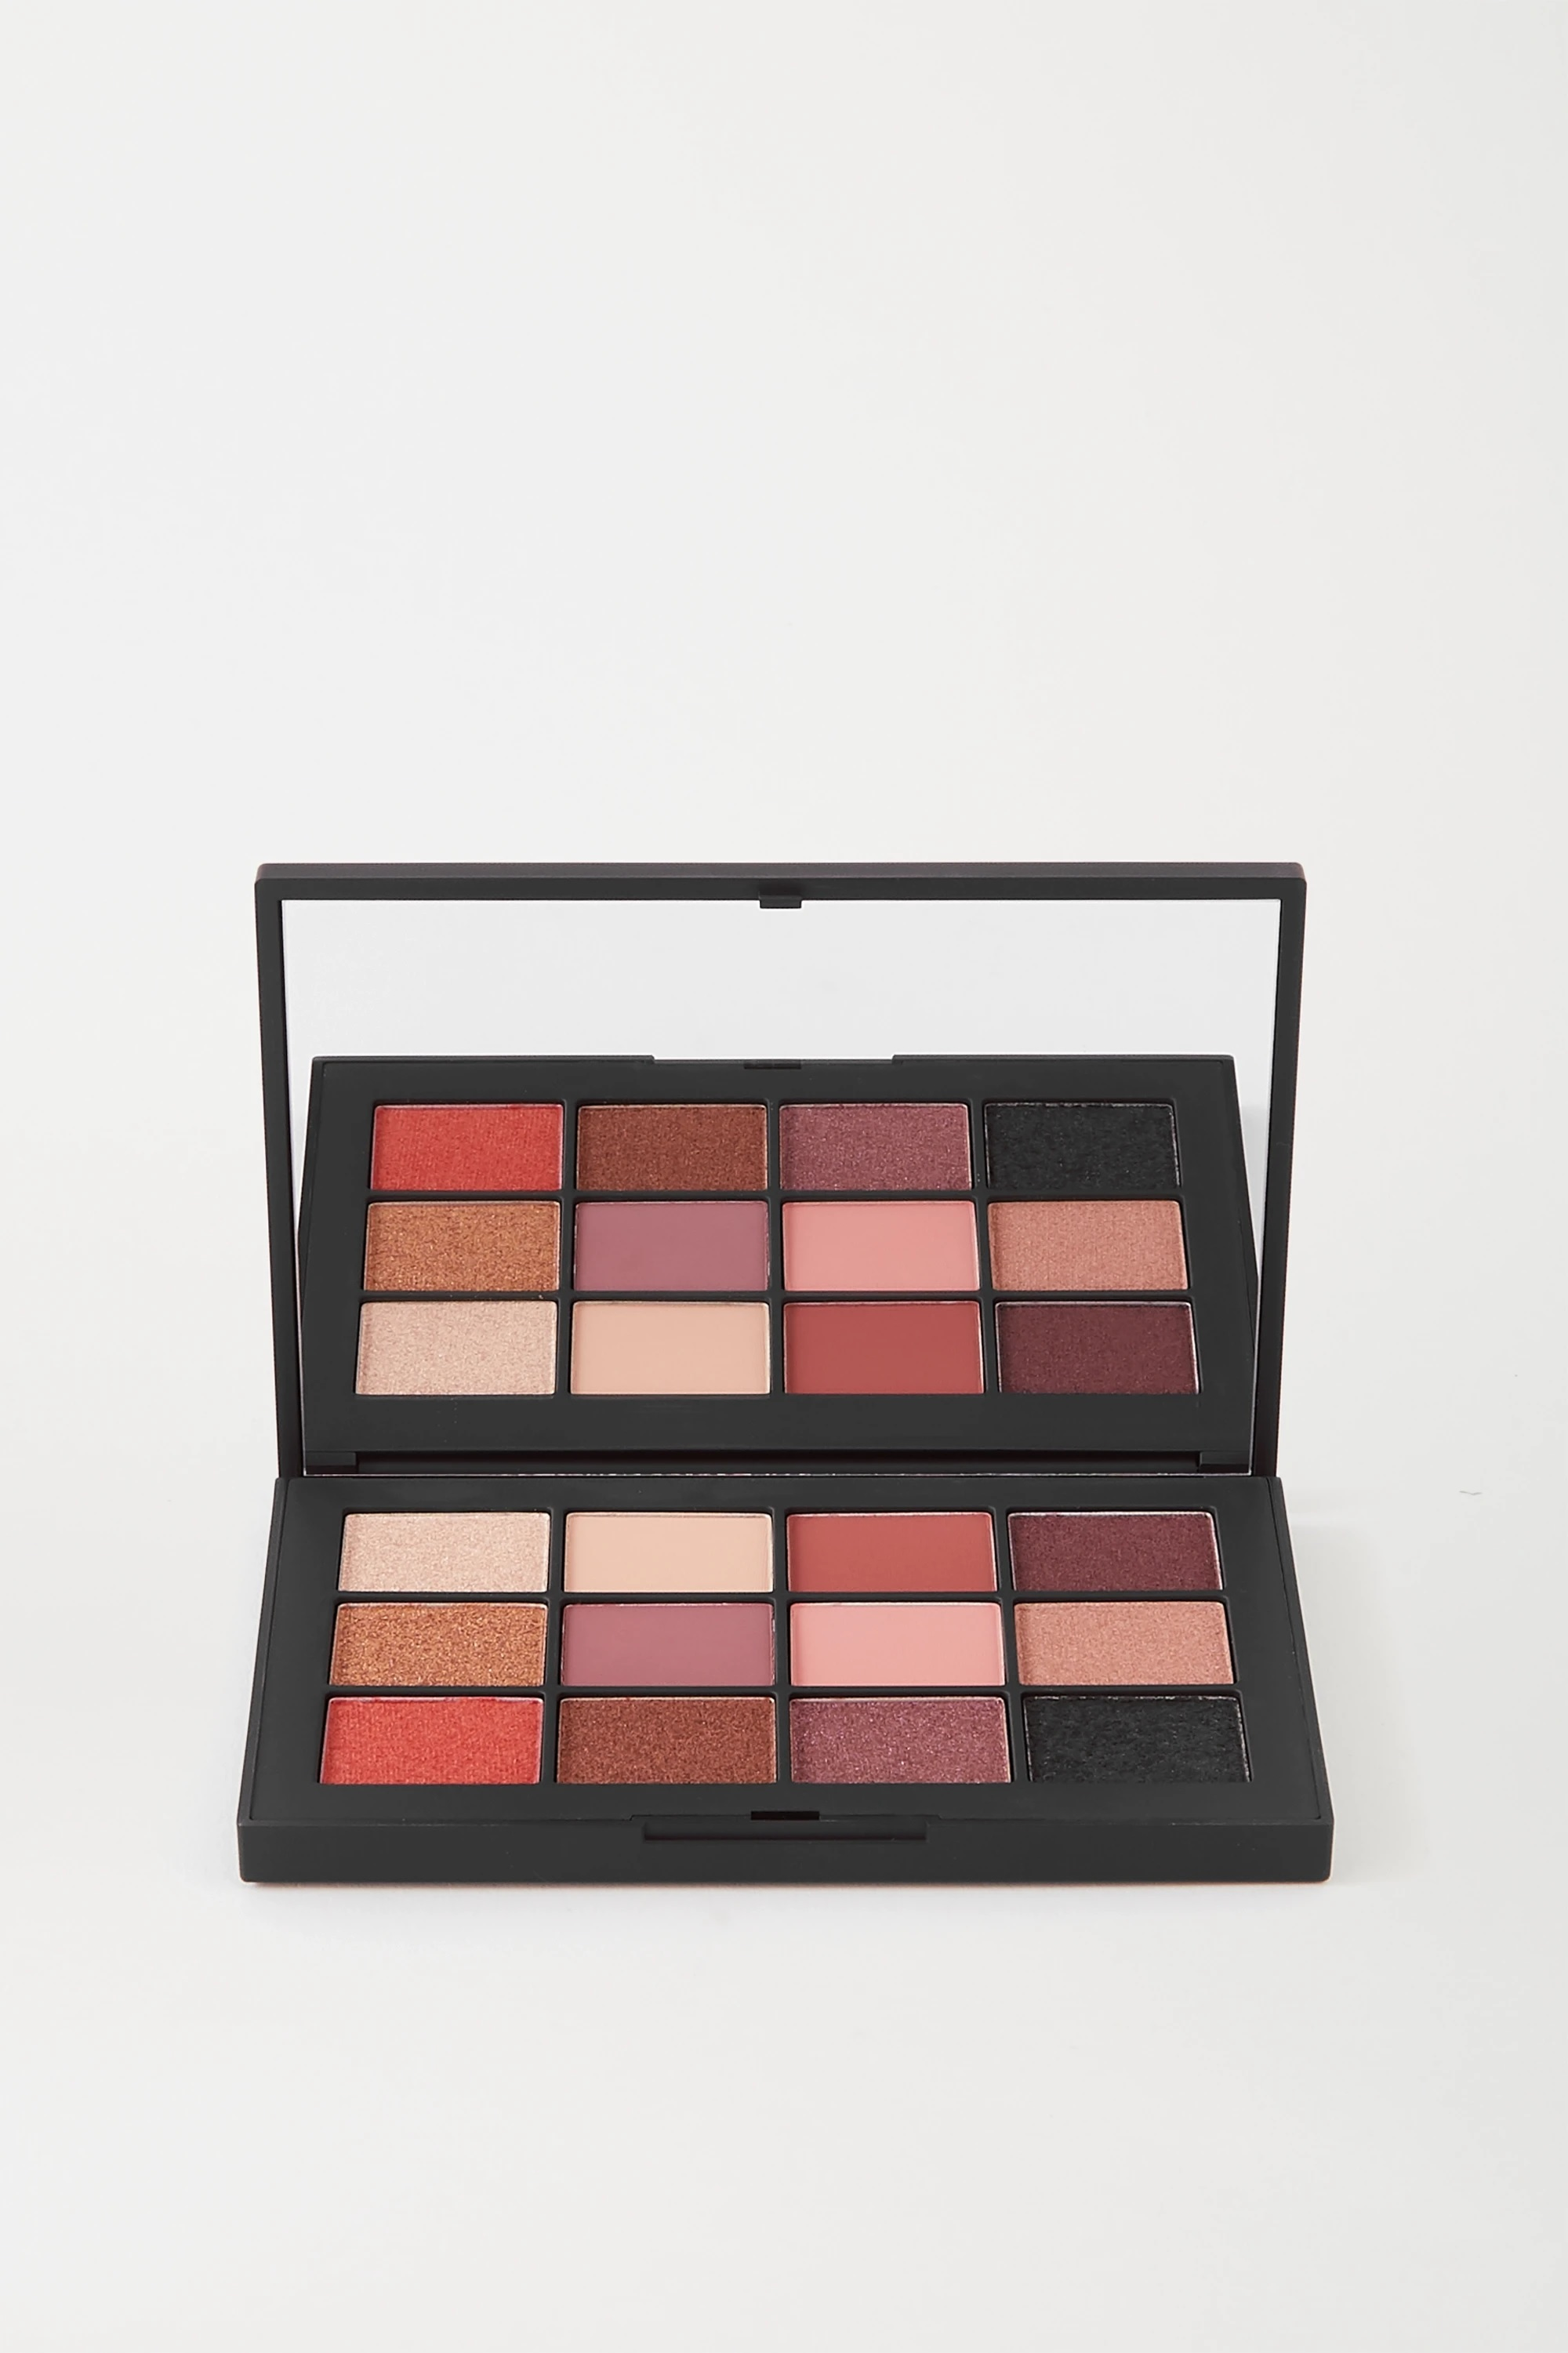 Nars Climax Extreme Effects Eyeshadow Palette